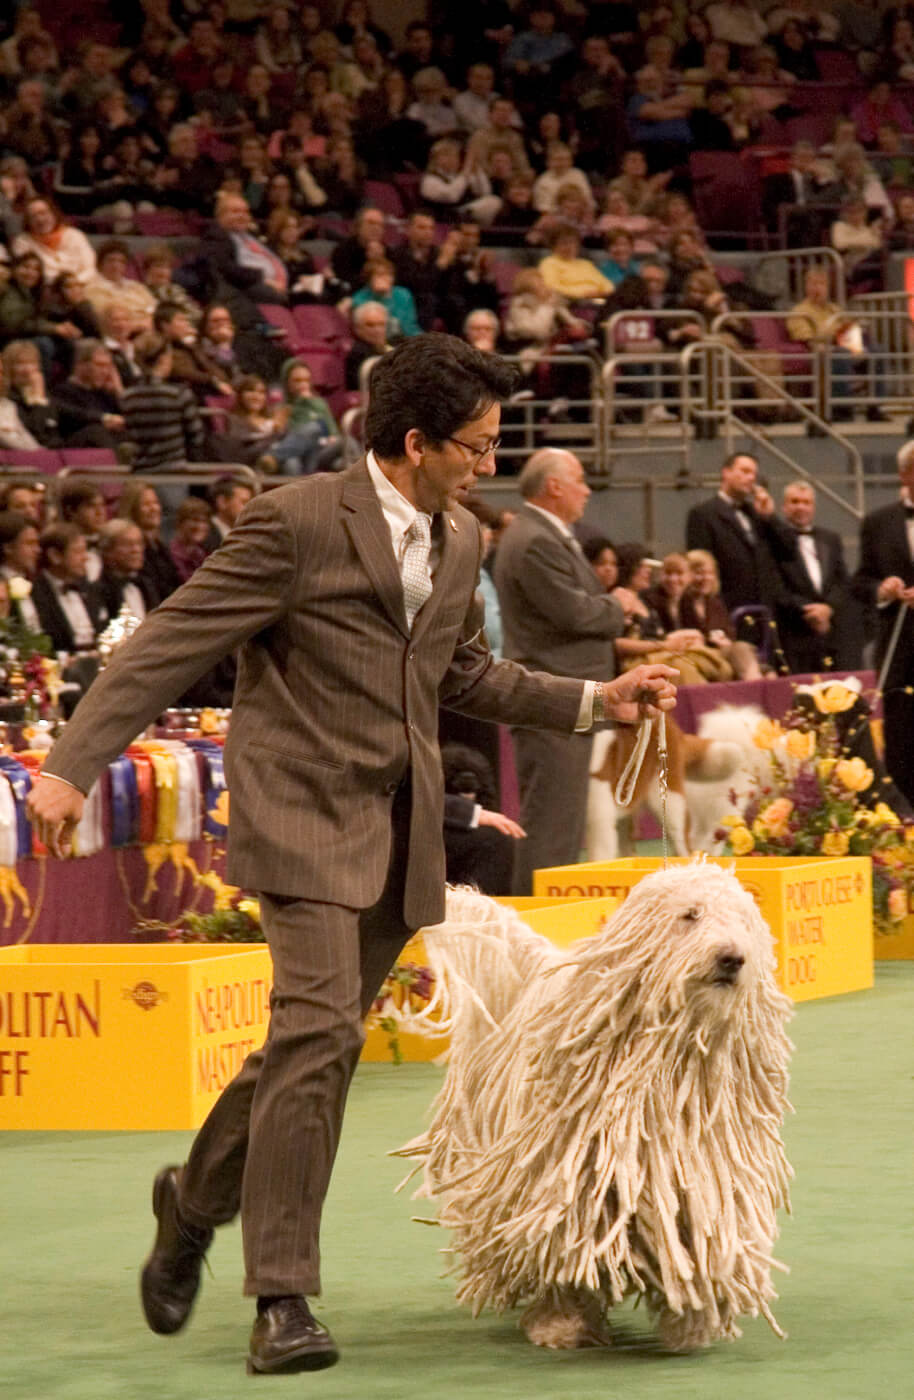 Westminster Dog Show Home Page